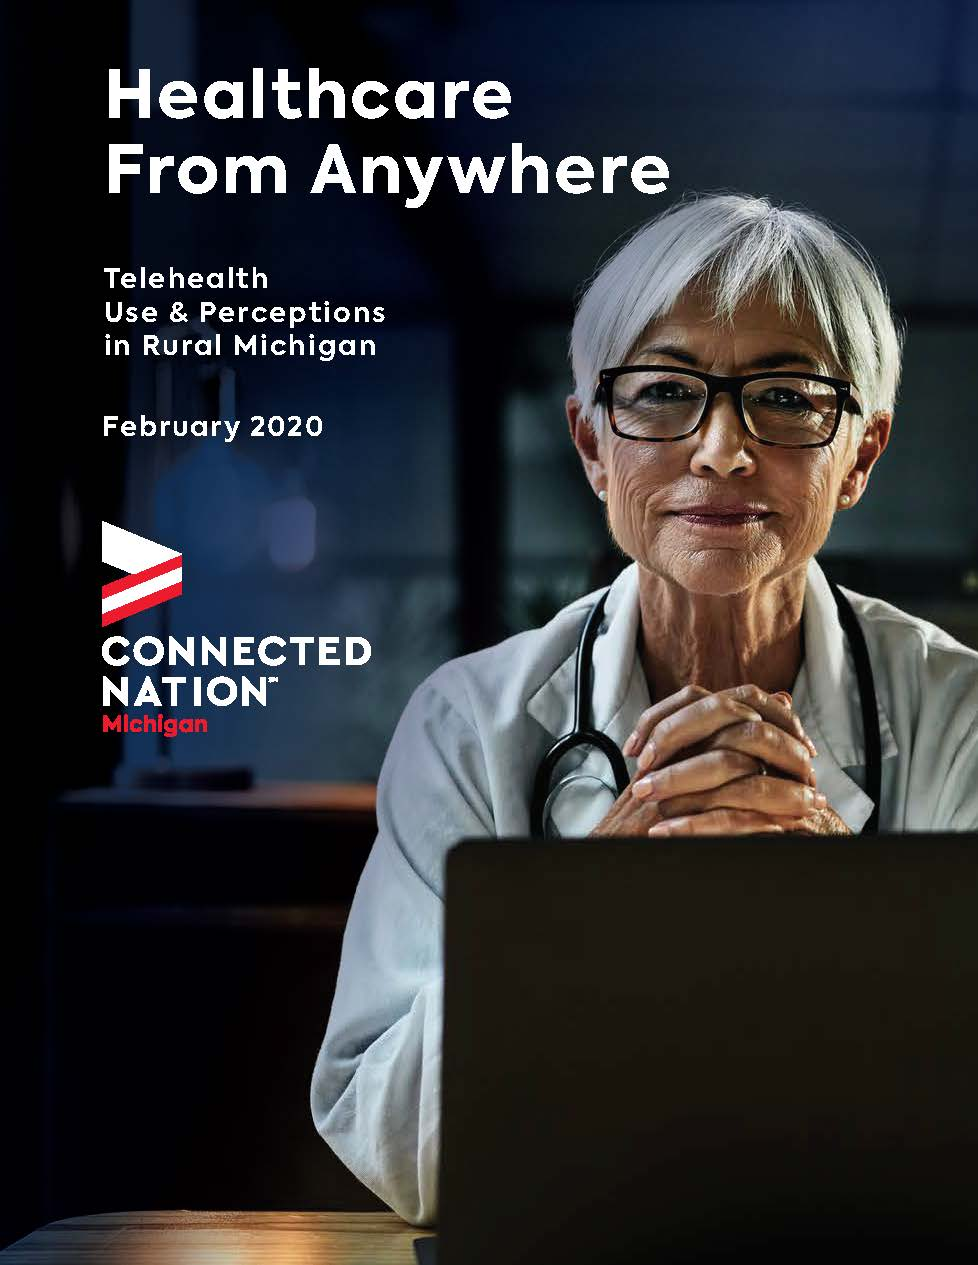 Healthcare From Anywhere Feb2020